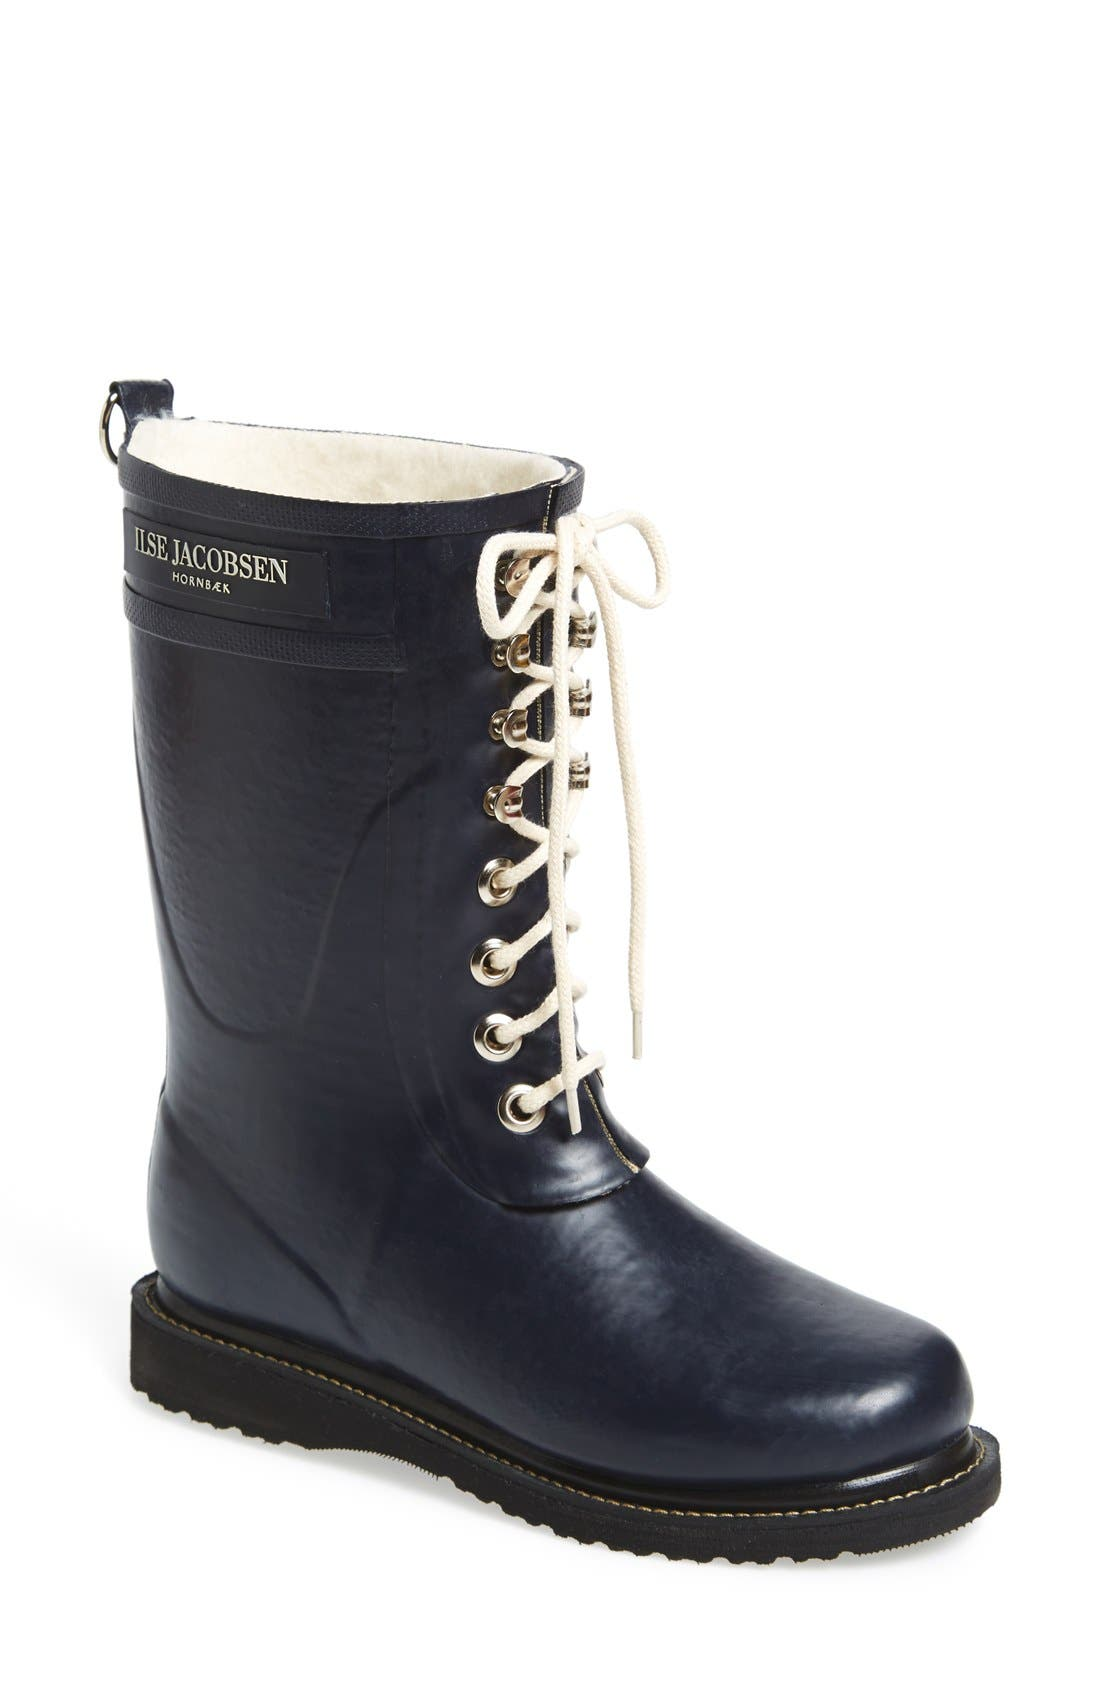 ILSE JACOBSEN, Rubber Waterproof Boot, Main thumbnail 1, color, DARK INDIGO